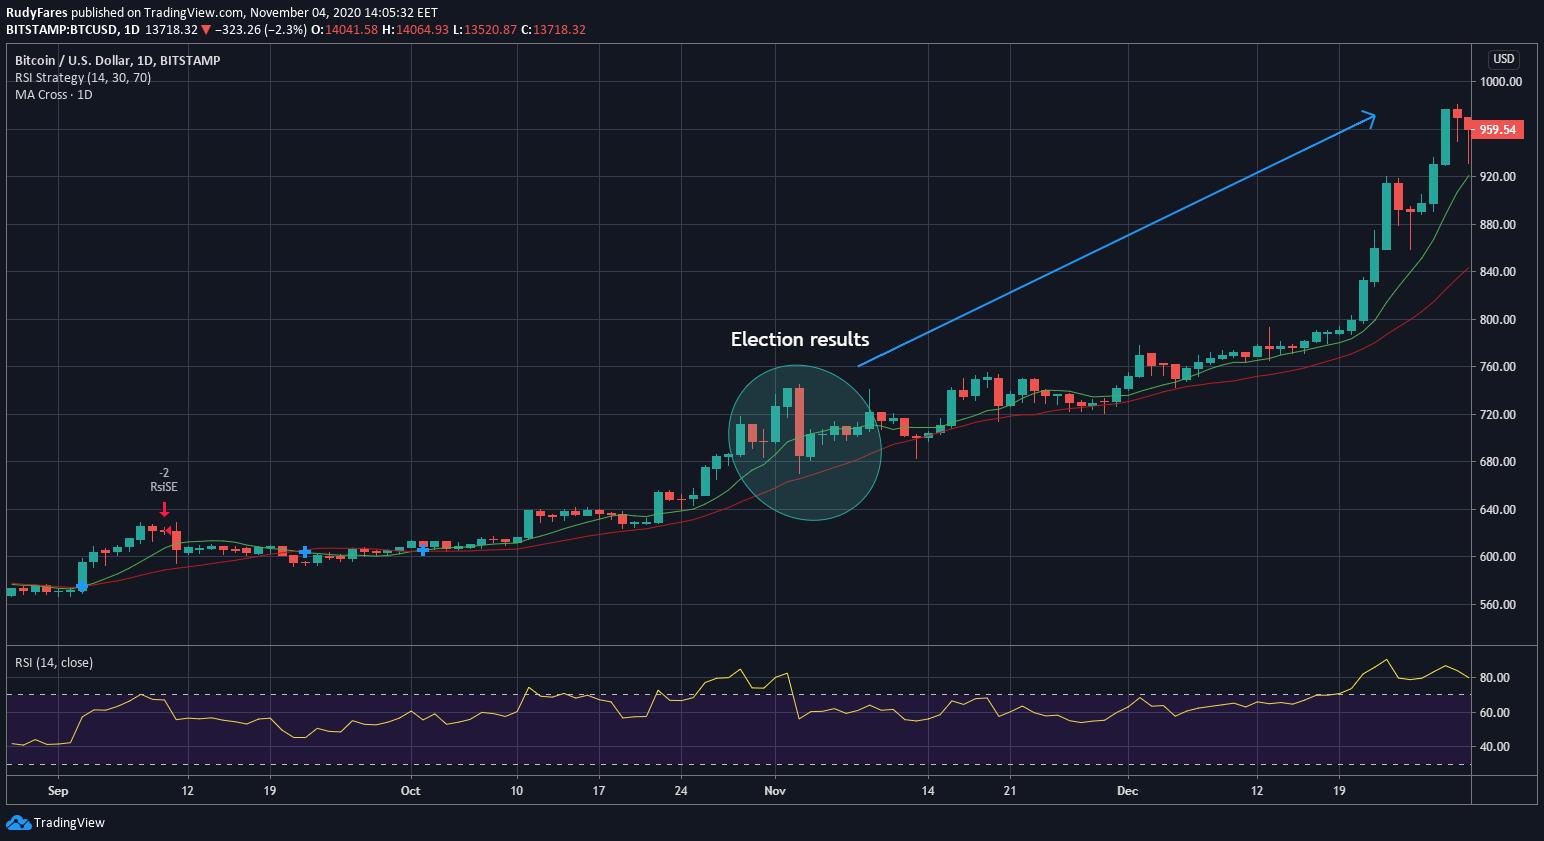 BTC/USD 1D chart, showing the uptrend after the 2016 USD Elections